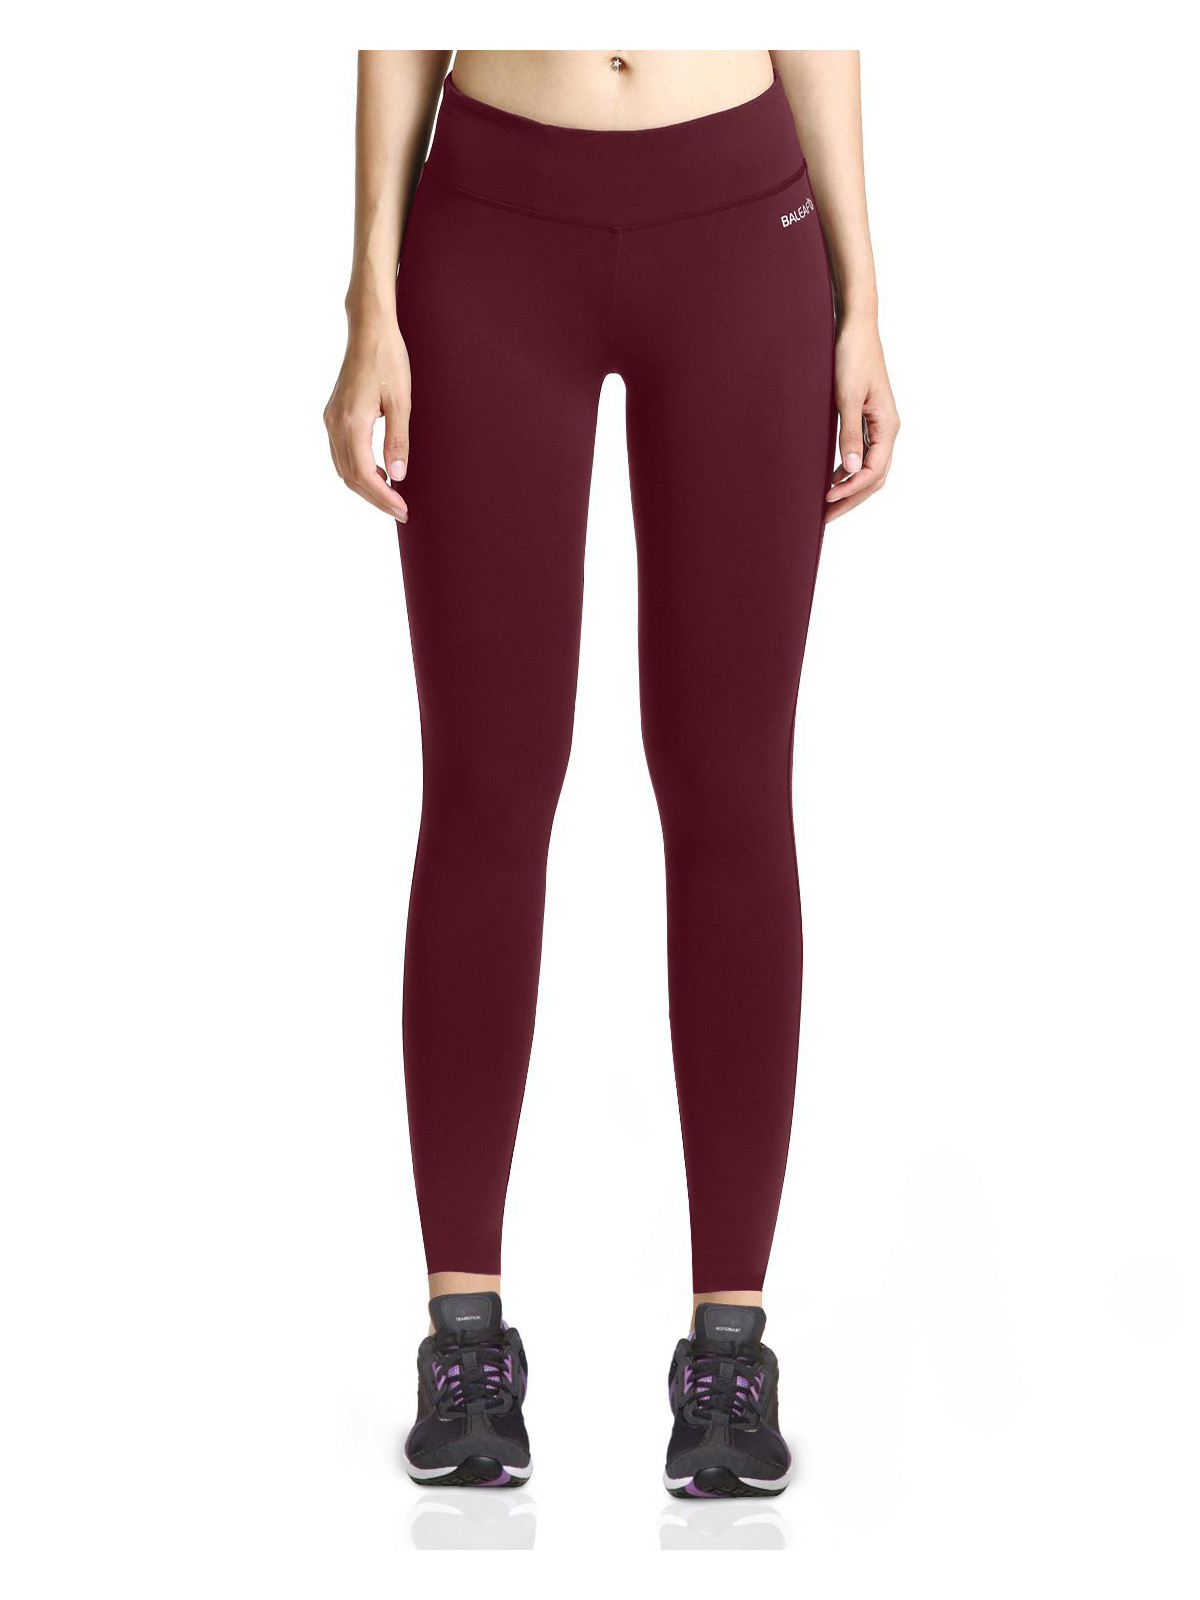 Women's Ankle Legging Inner Pocket Non See-through Fabric Ruby Wine